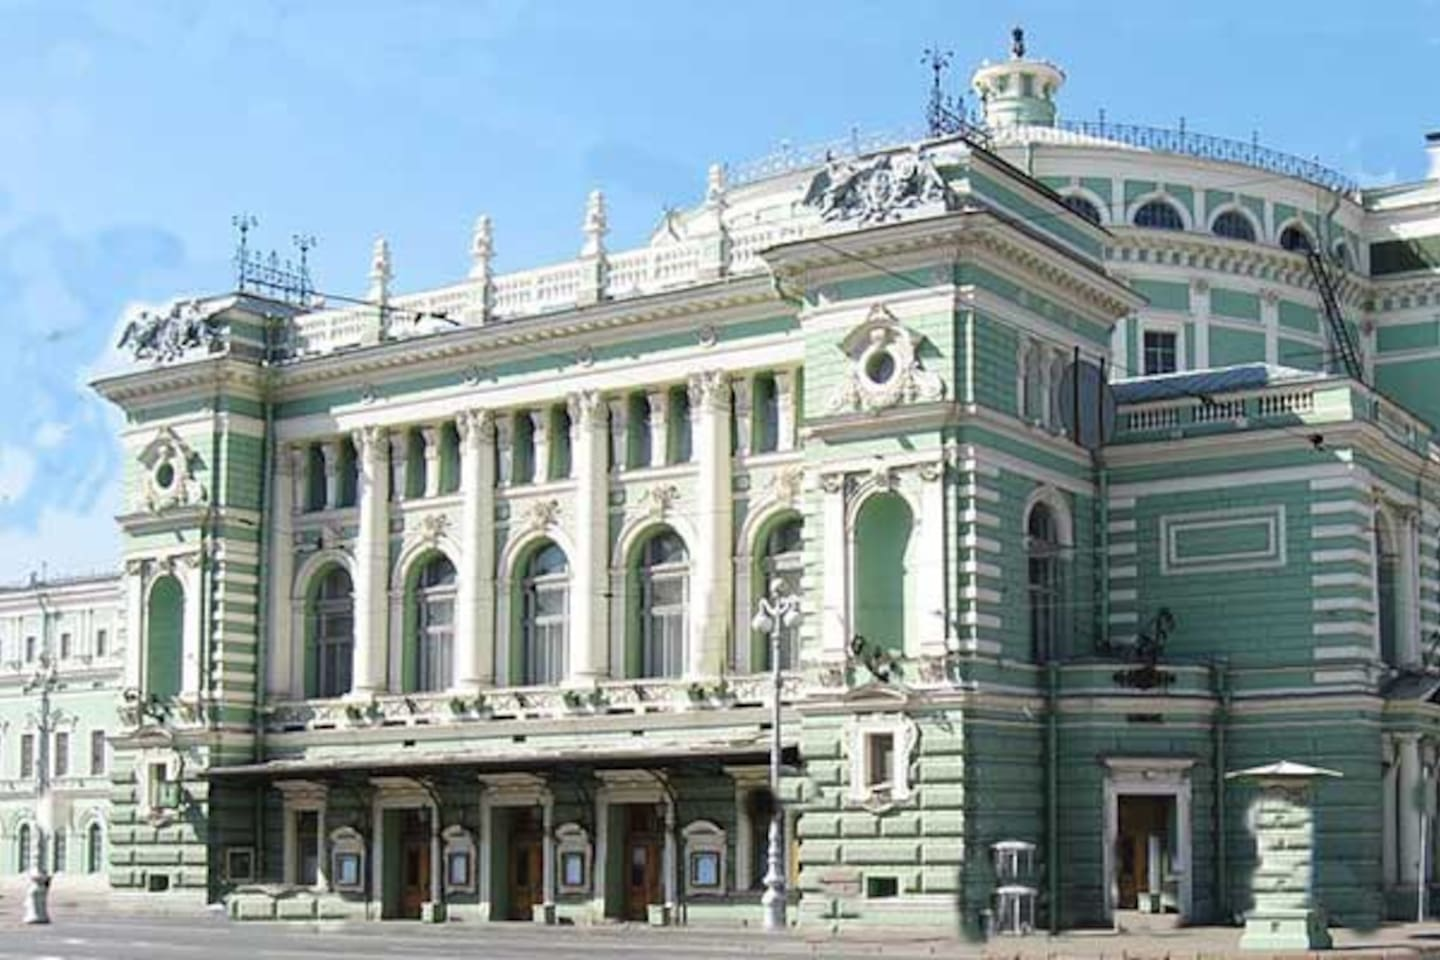 Mariinsky Theater in 3 minutes walk along the embankment of the Griboedov Canal from the apartment